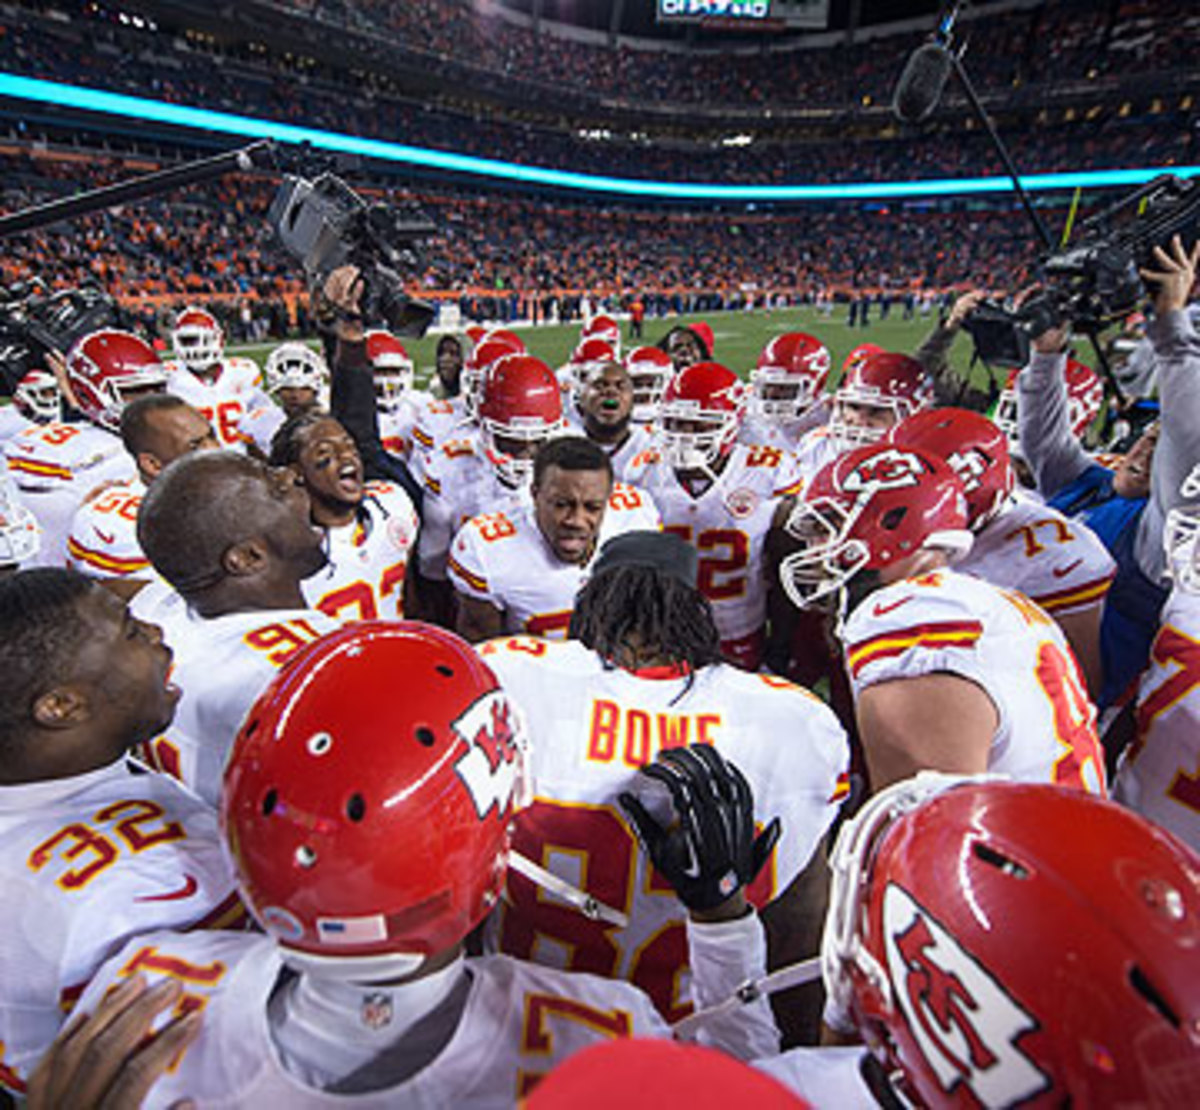 Eric Berry, center, has been a leader on the Chiefs since he arrived in 2010. (Rob Tringali/Getty Images)